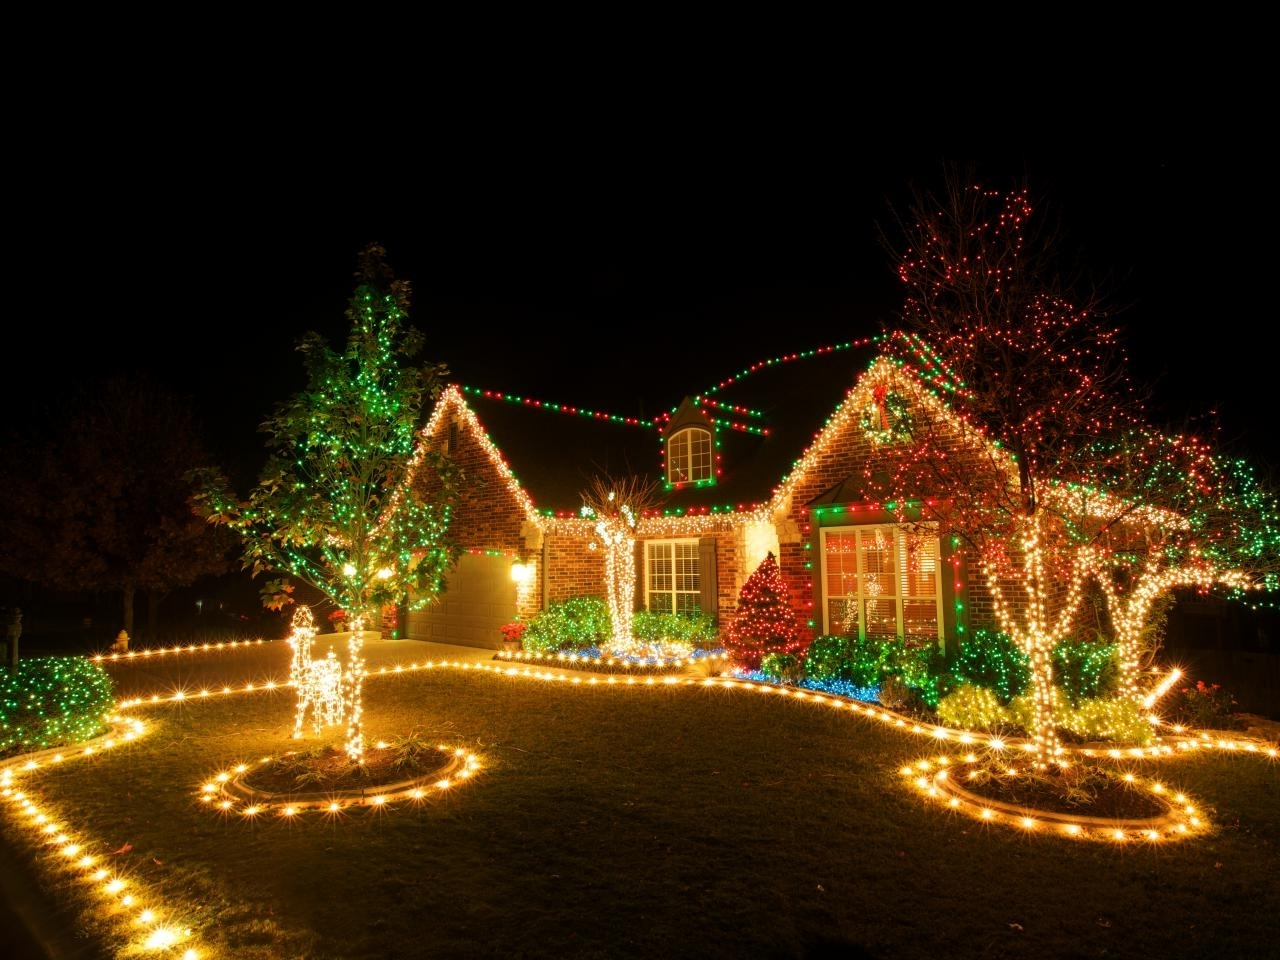 Hanging Outdoor Christmas Tree Lights With Regard To Most Up To Date White Outdoor Christmas Lights : 6 Tips For Outdoor Christmas Lights (View 8 of 20)